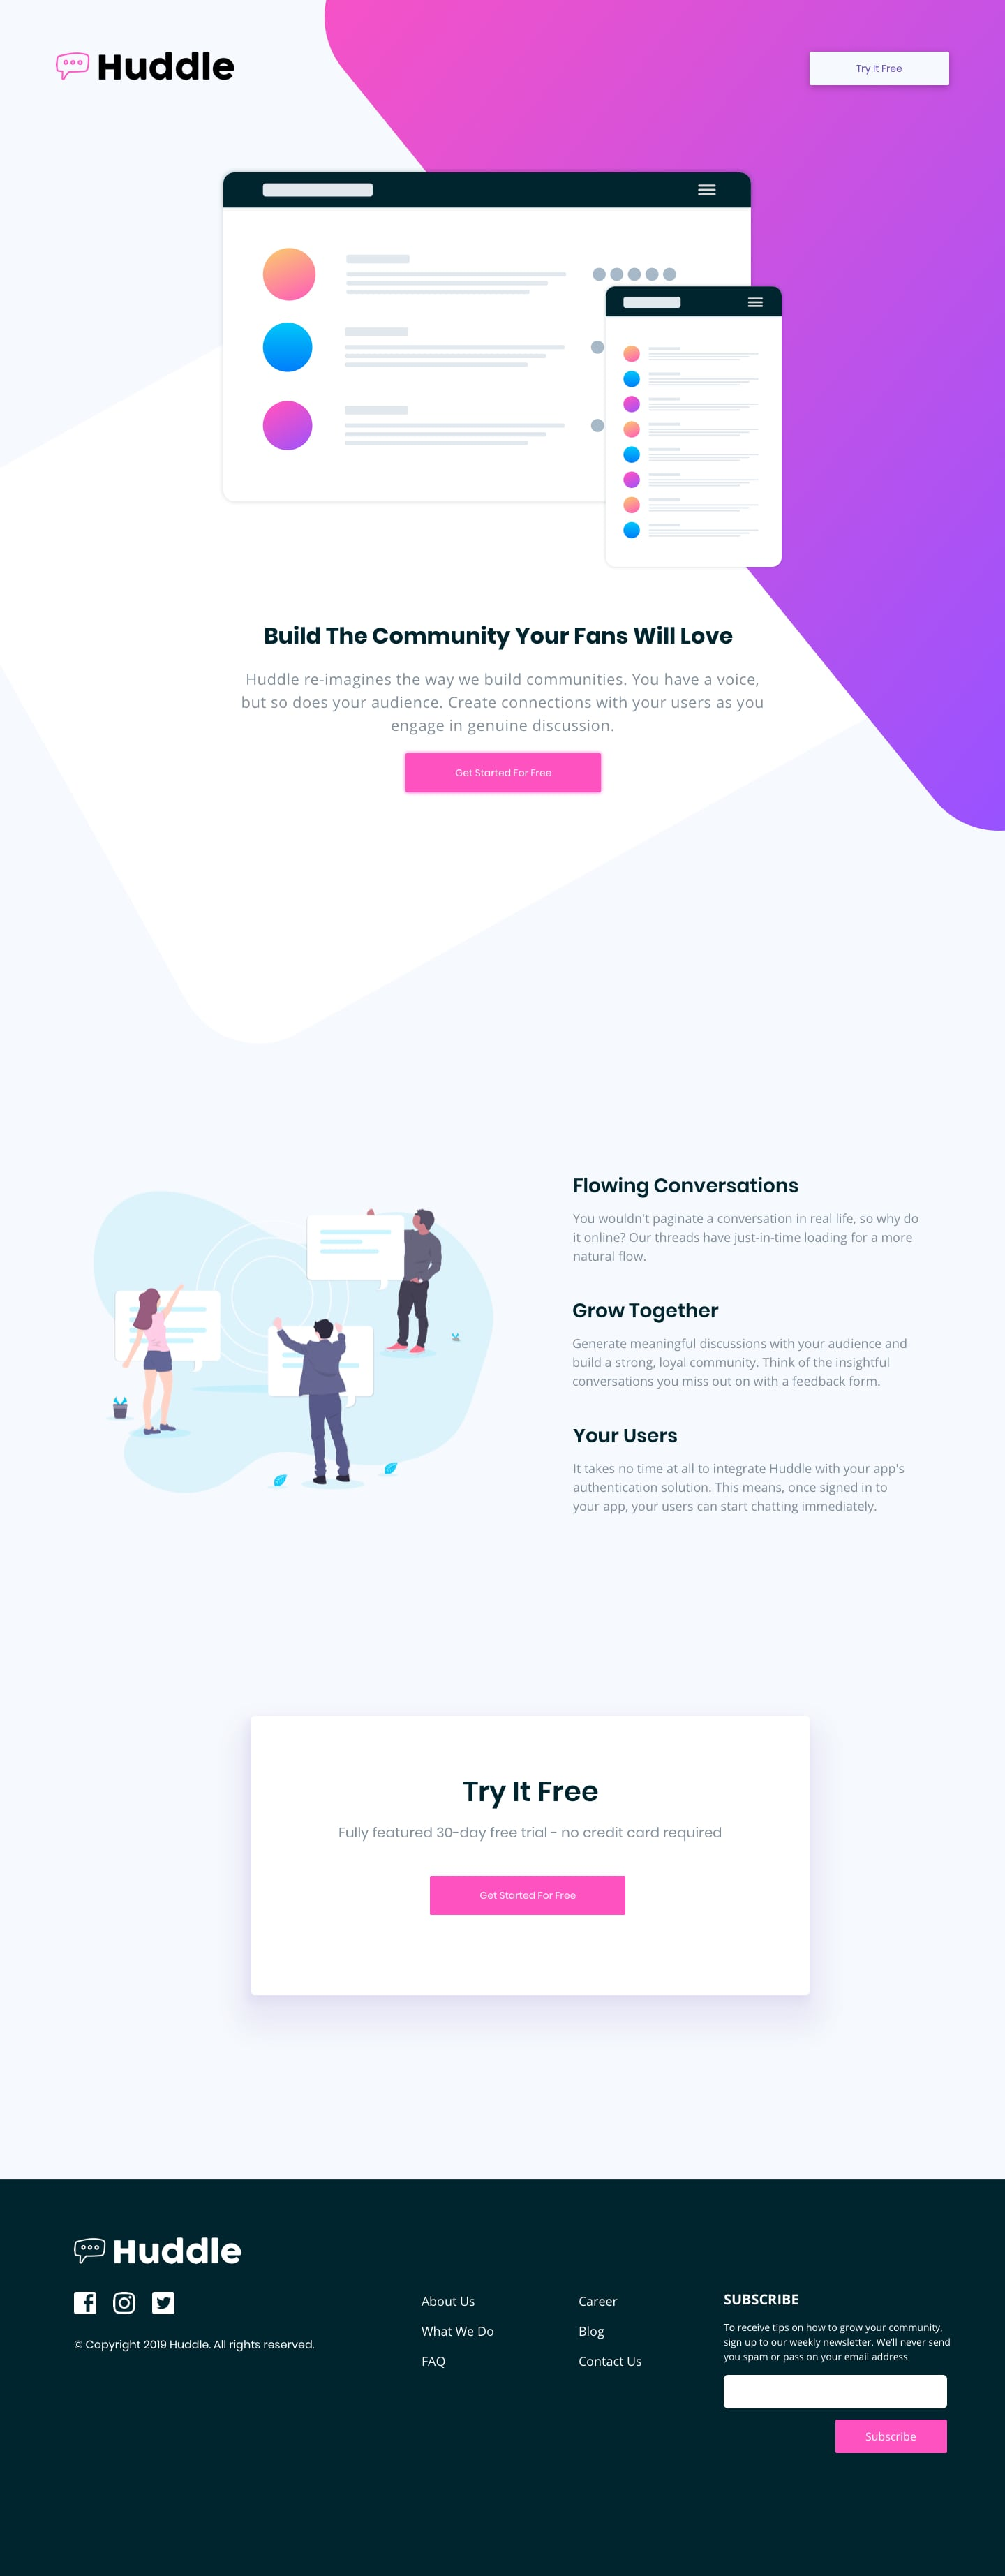 Design preview for Huddle landing page with coded decorative elements coding challenge